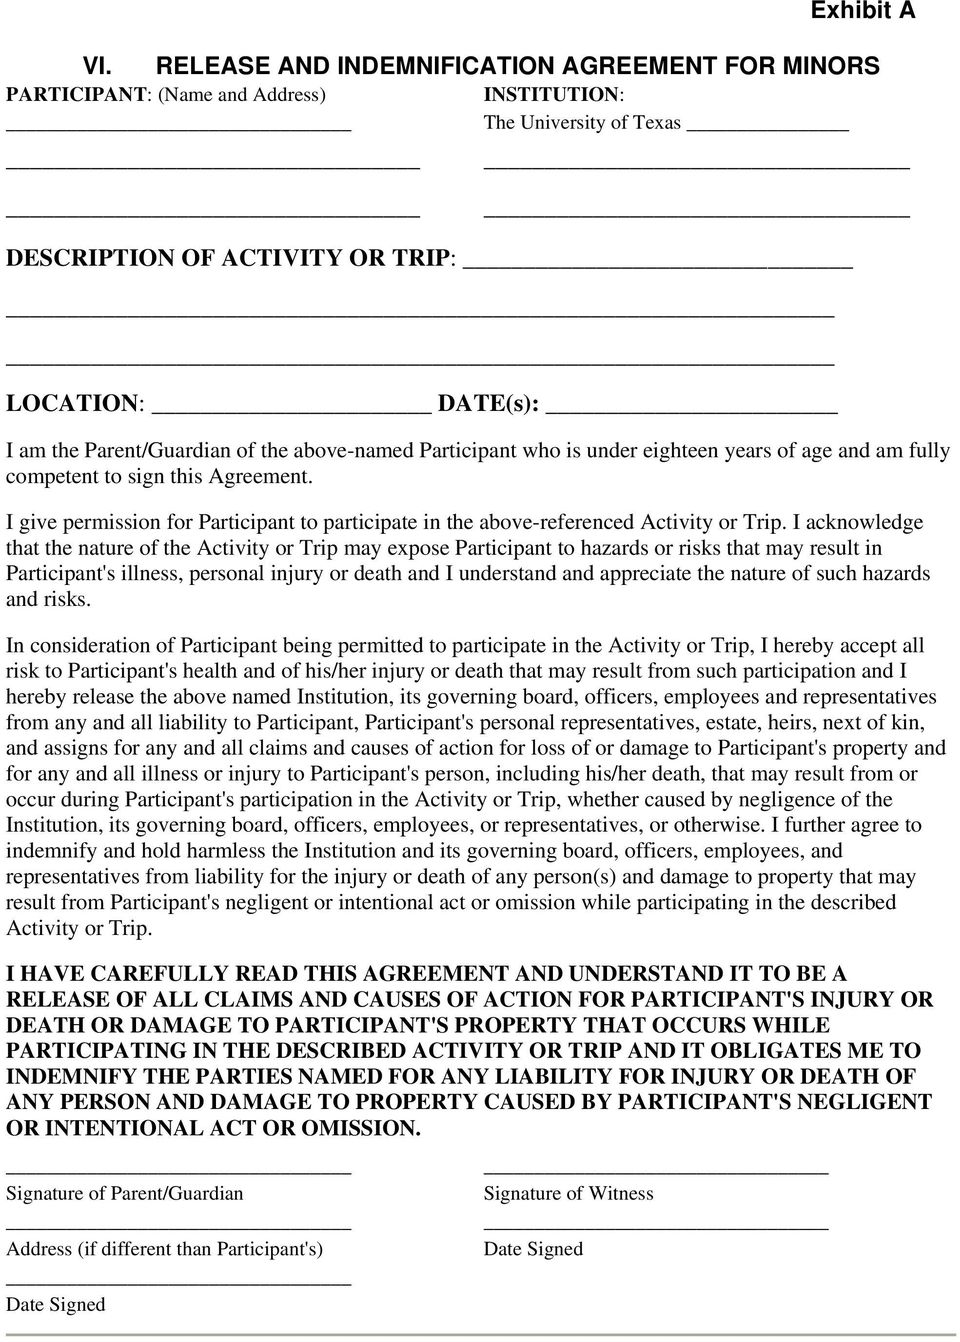 the above-named Participant who is under eighteen years of age and am fully competent to sign this Agreement. I give permission for Participant to participate in the above-referenced Activity or Trip.